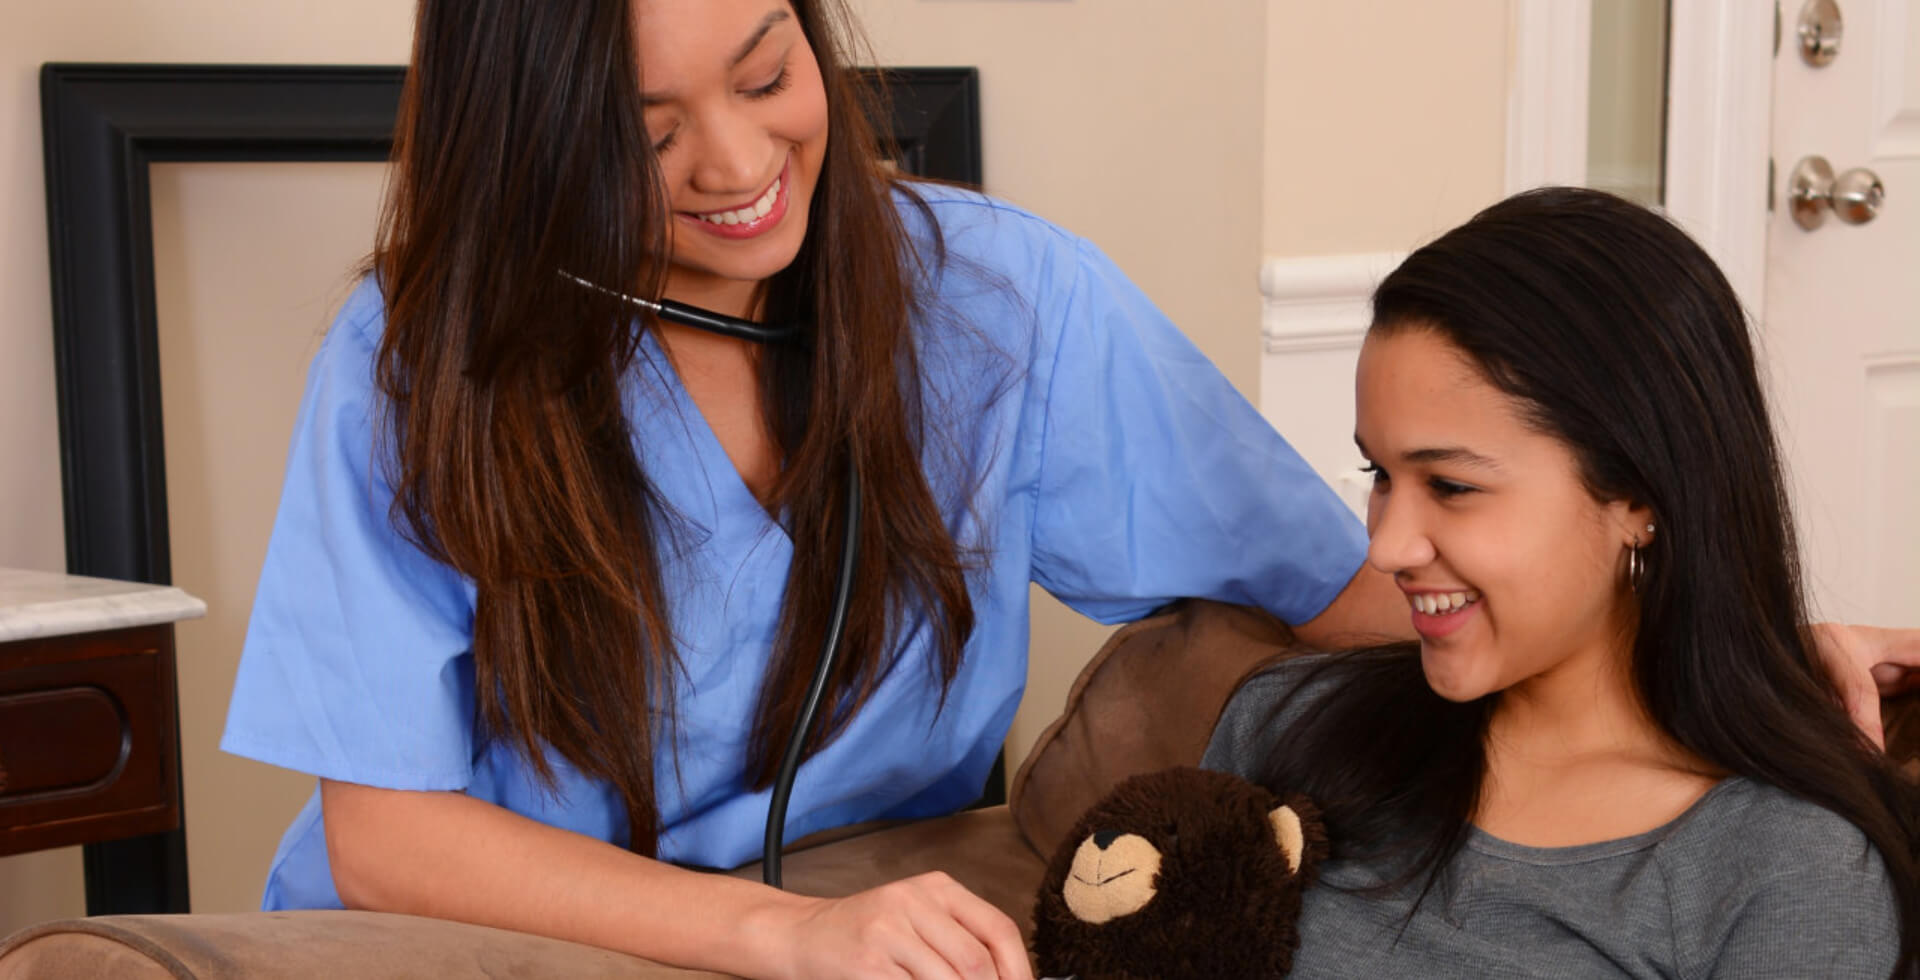 Home health care worker and a teen girl